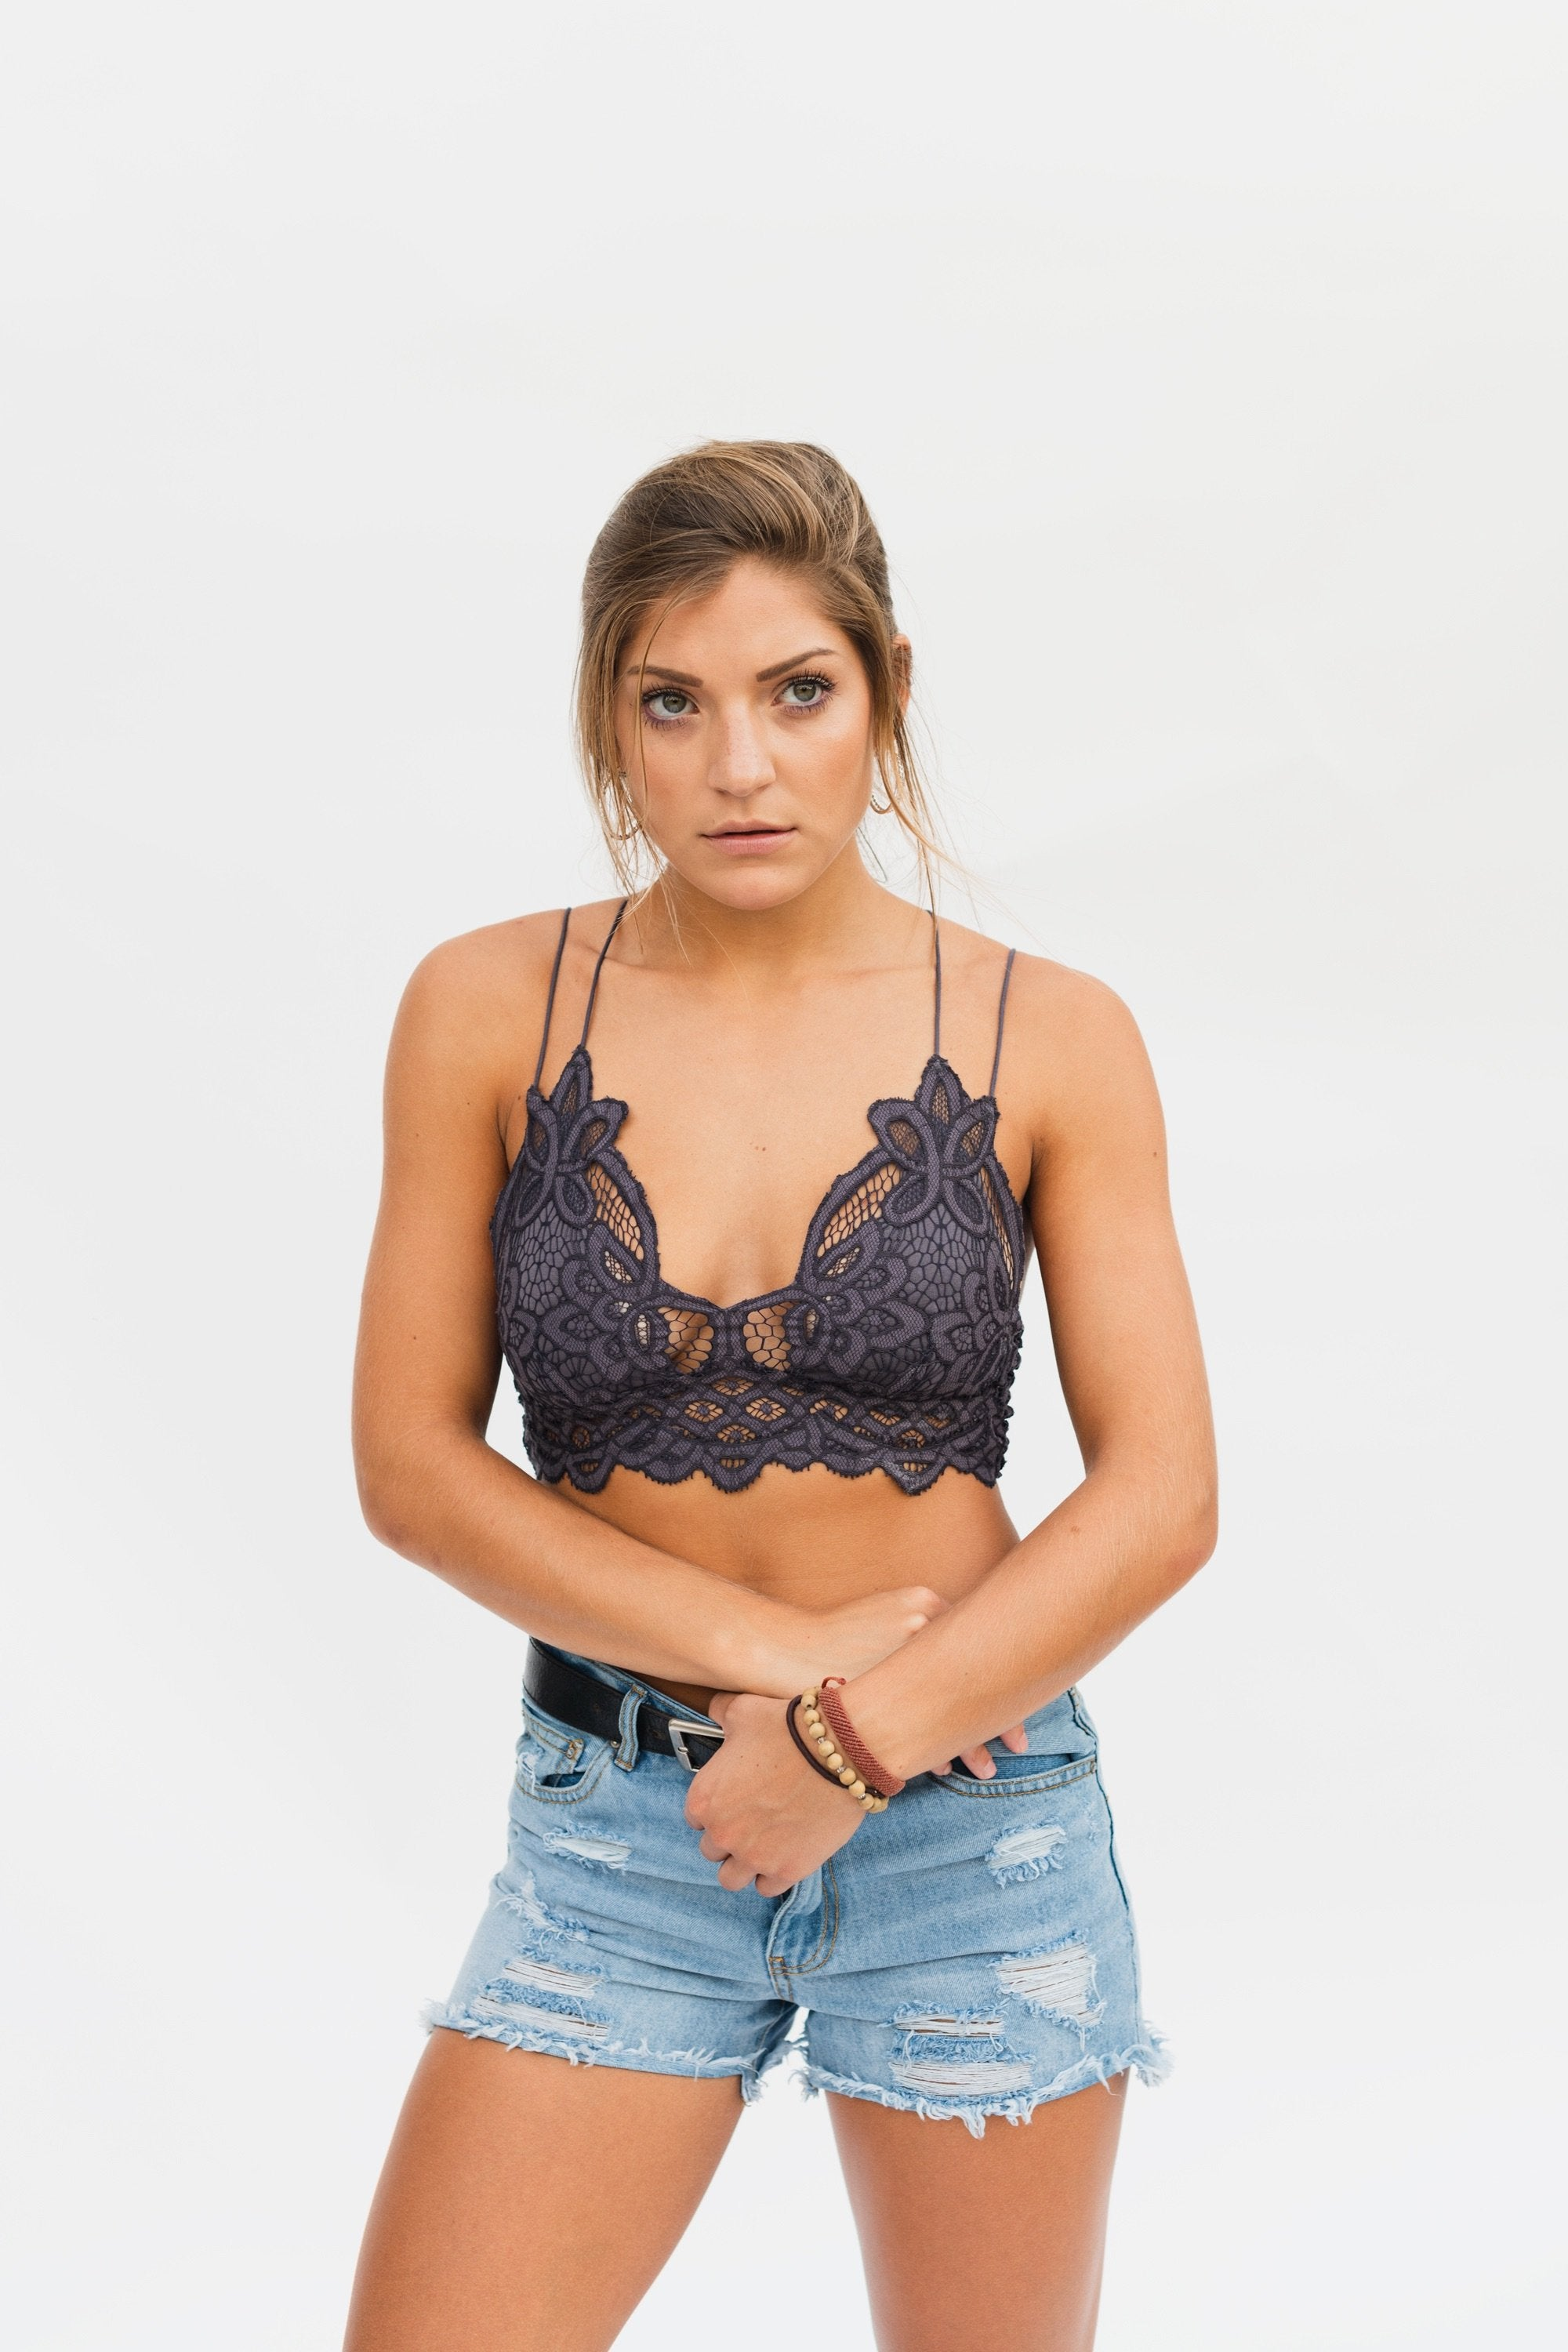 FREE PEOPLE ADELLA BRALETTE GREY-